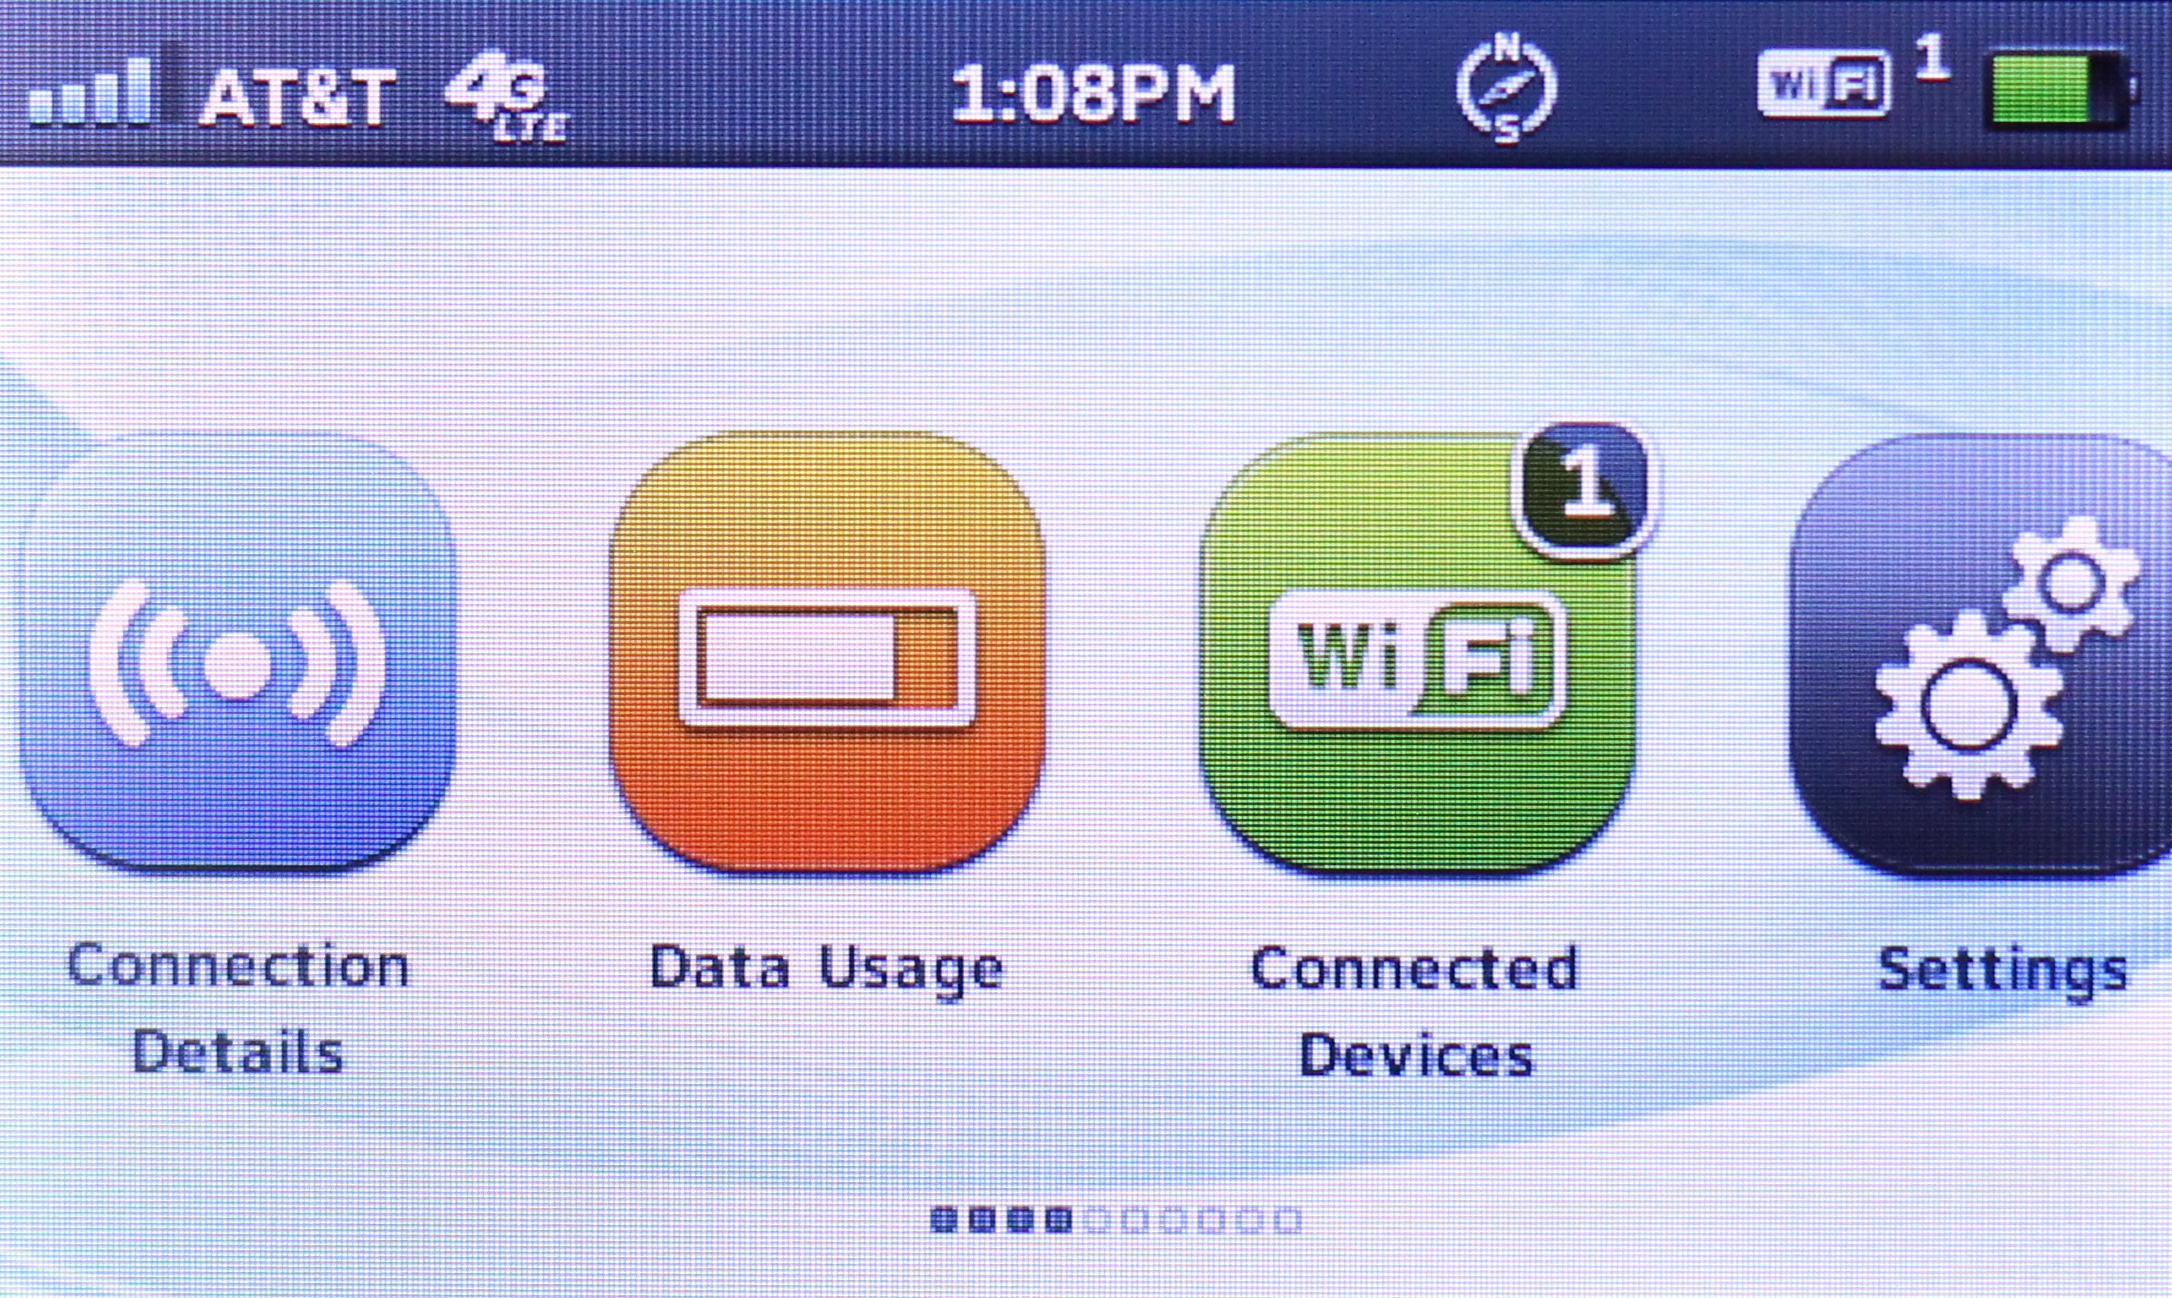 The first four buttons offer connection details, data usage, and more.